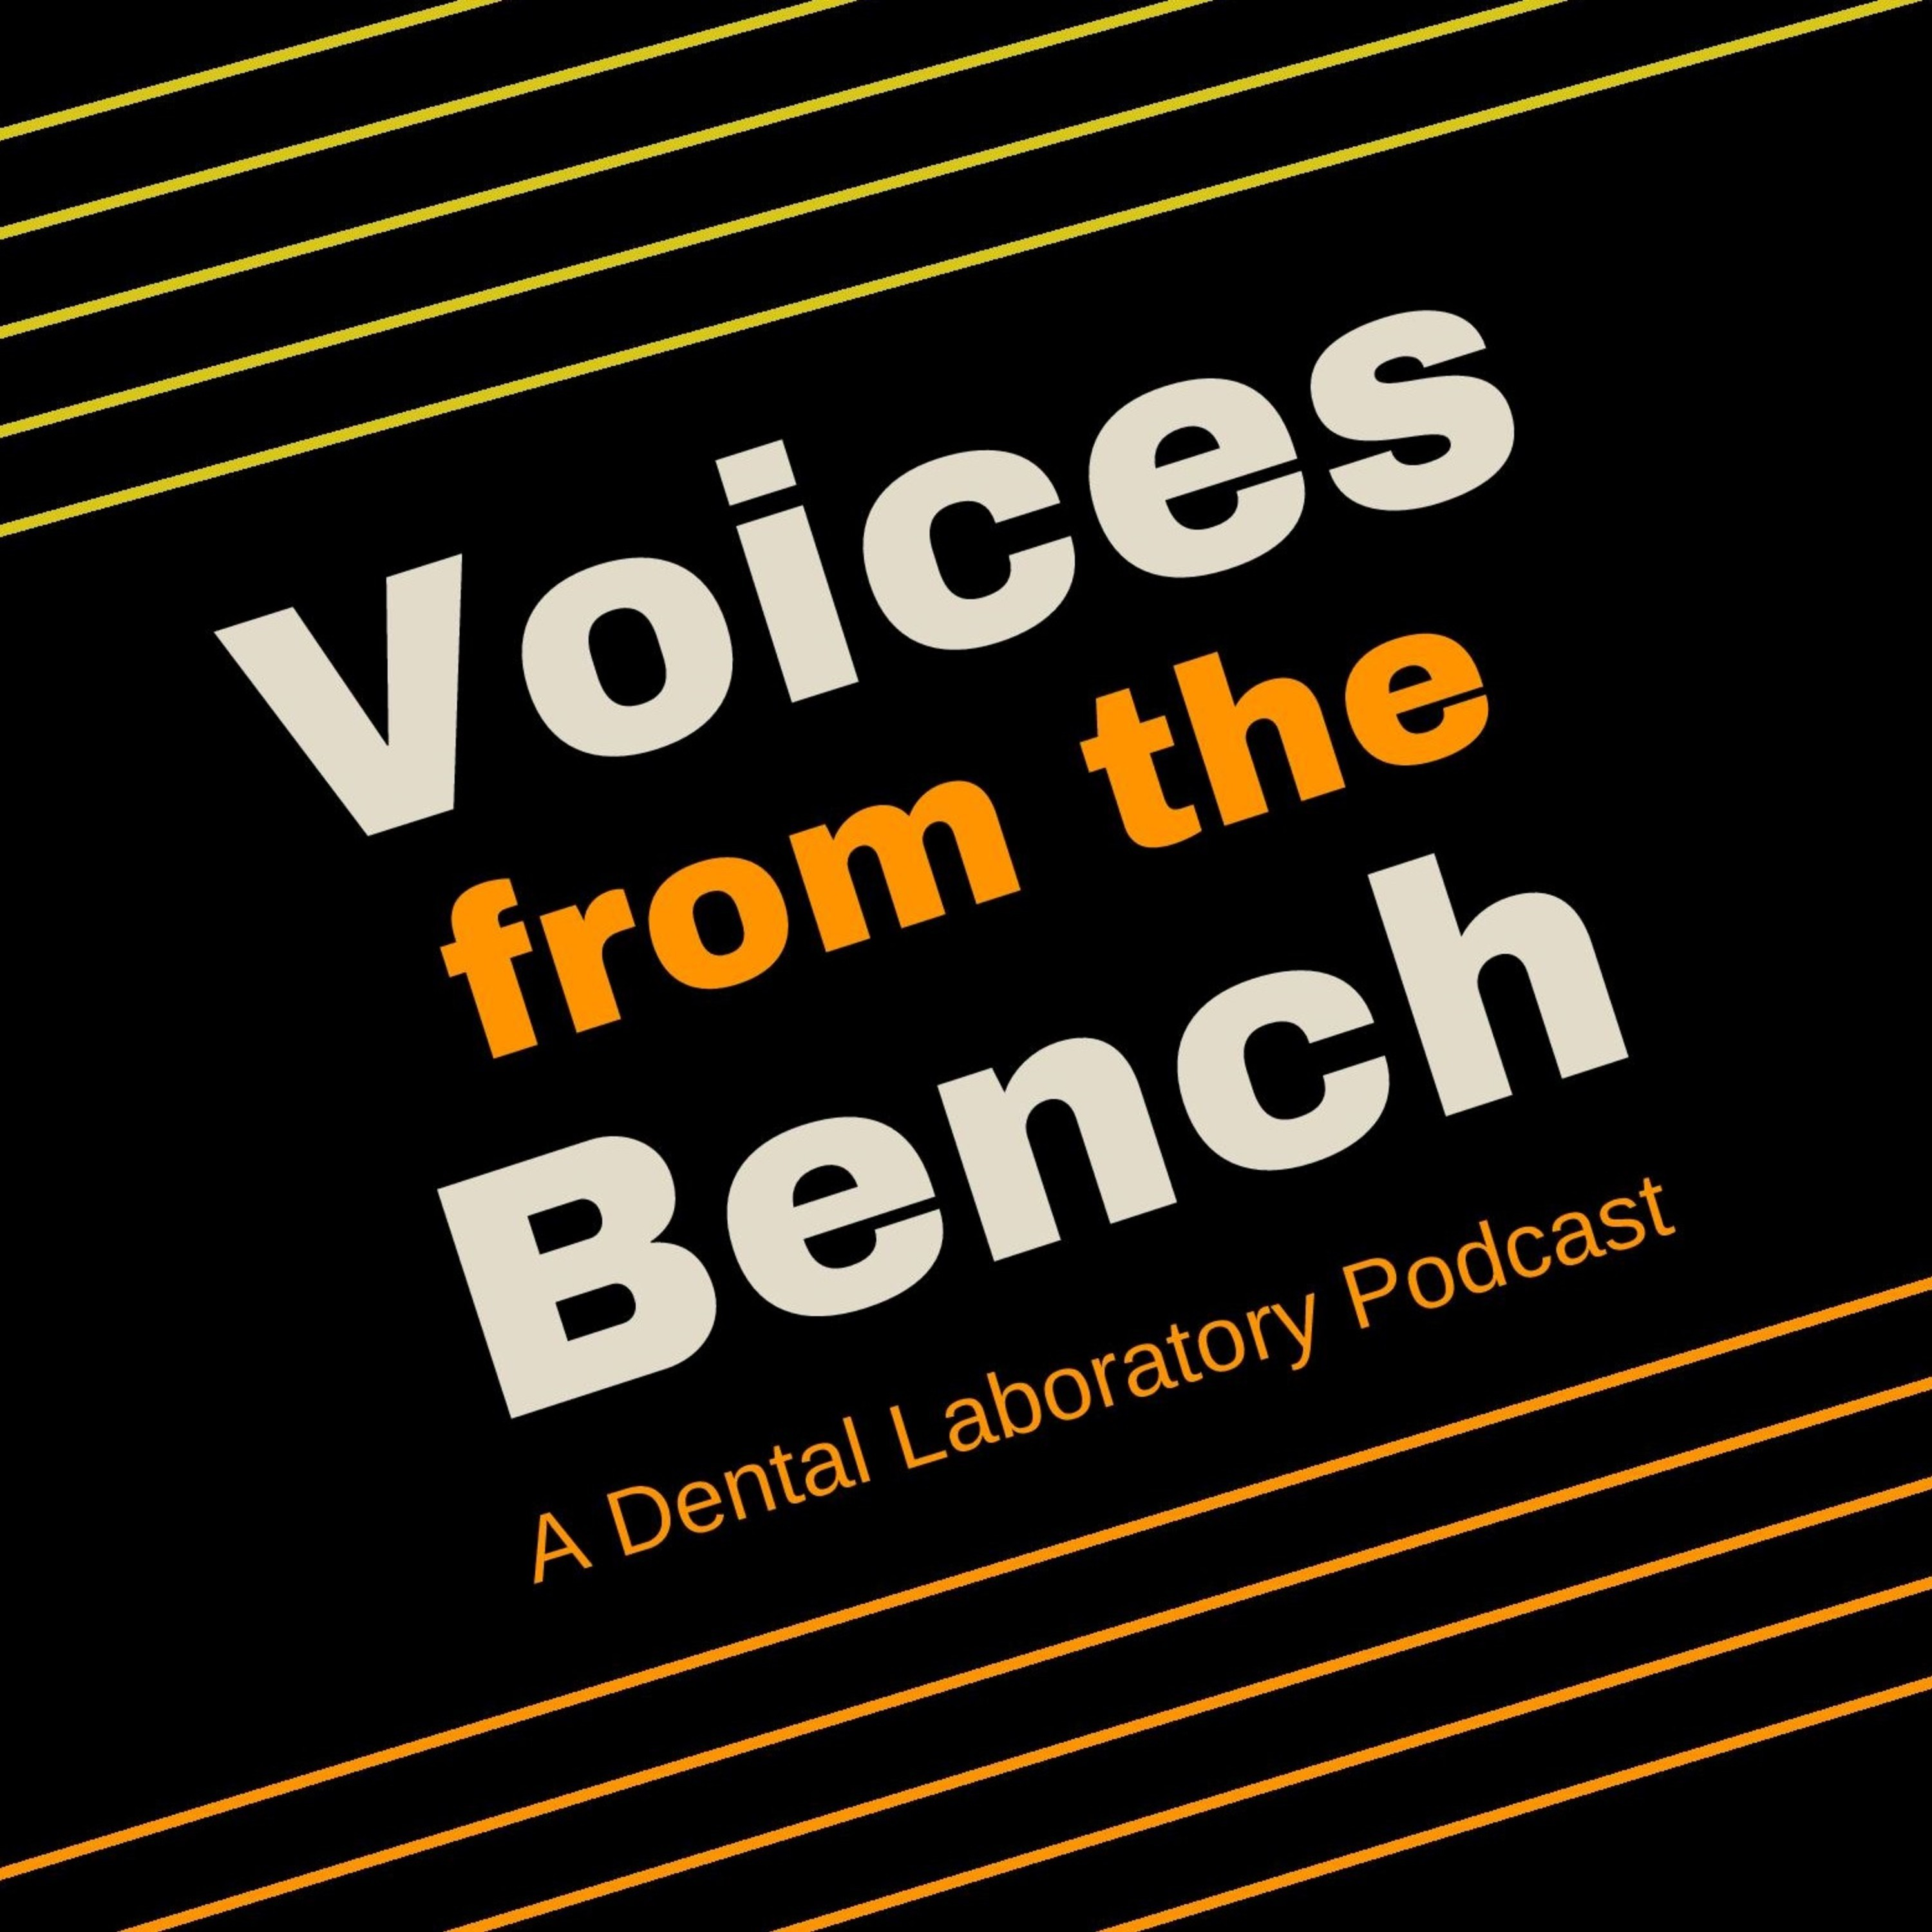 122: Hanging Out A Shingle for Denturism: Vallan Charron & Melissa Brulotte